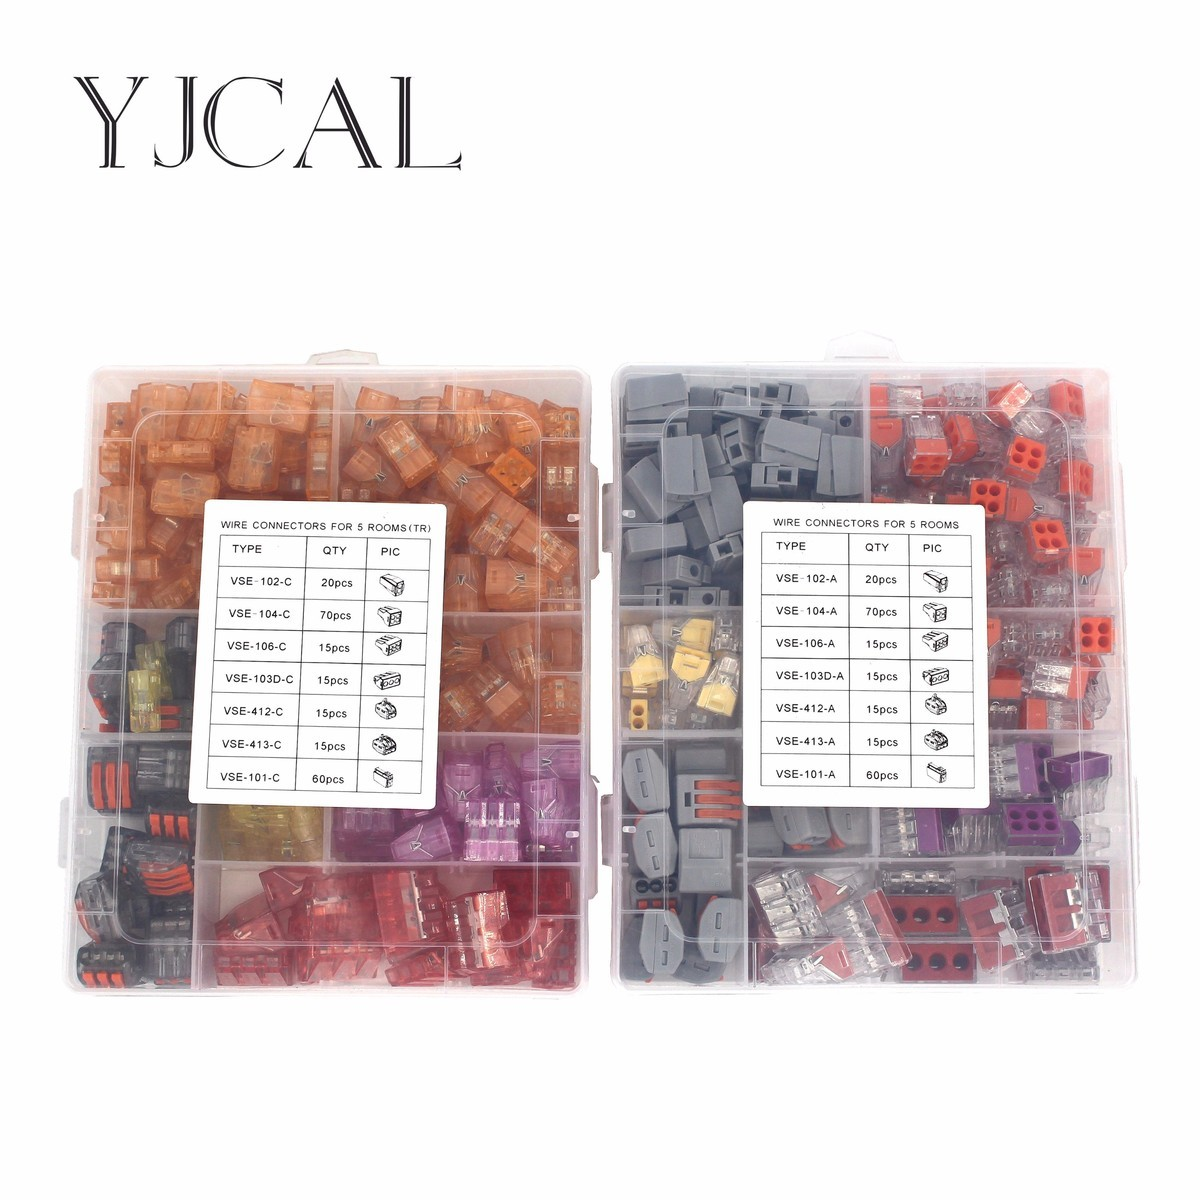 Wago Type Wire Connector  110PCS/Box Universal Compact Terminal Block Lighting  Wire Connector For 5 Room Mixed Quick Connector <br>